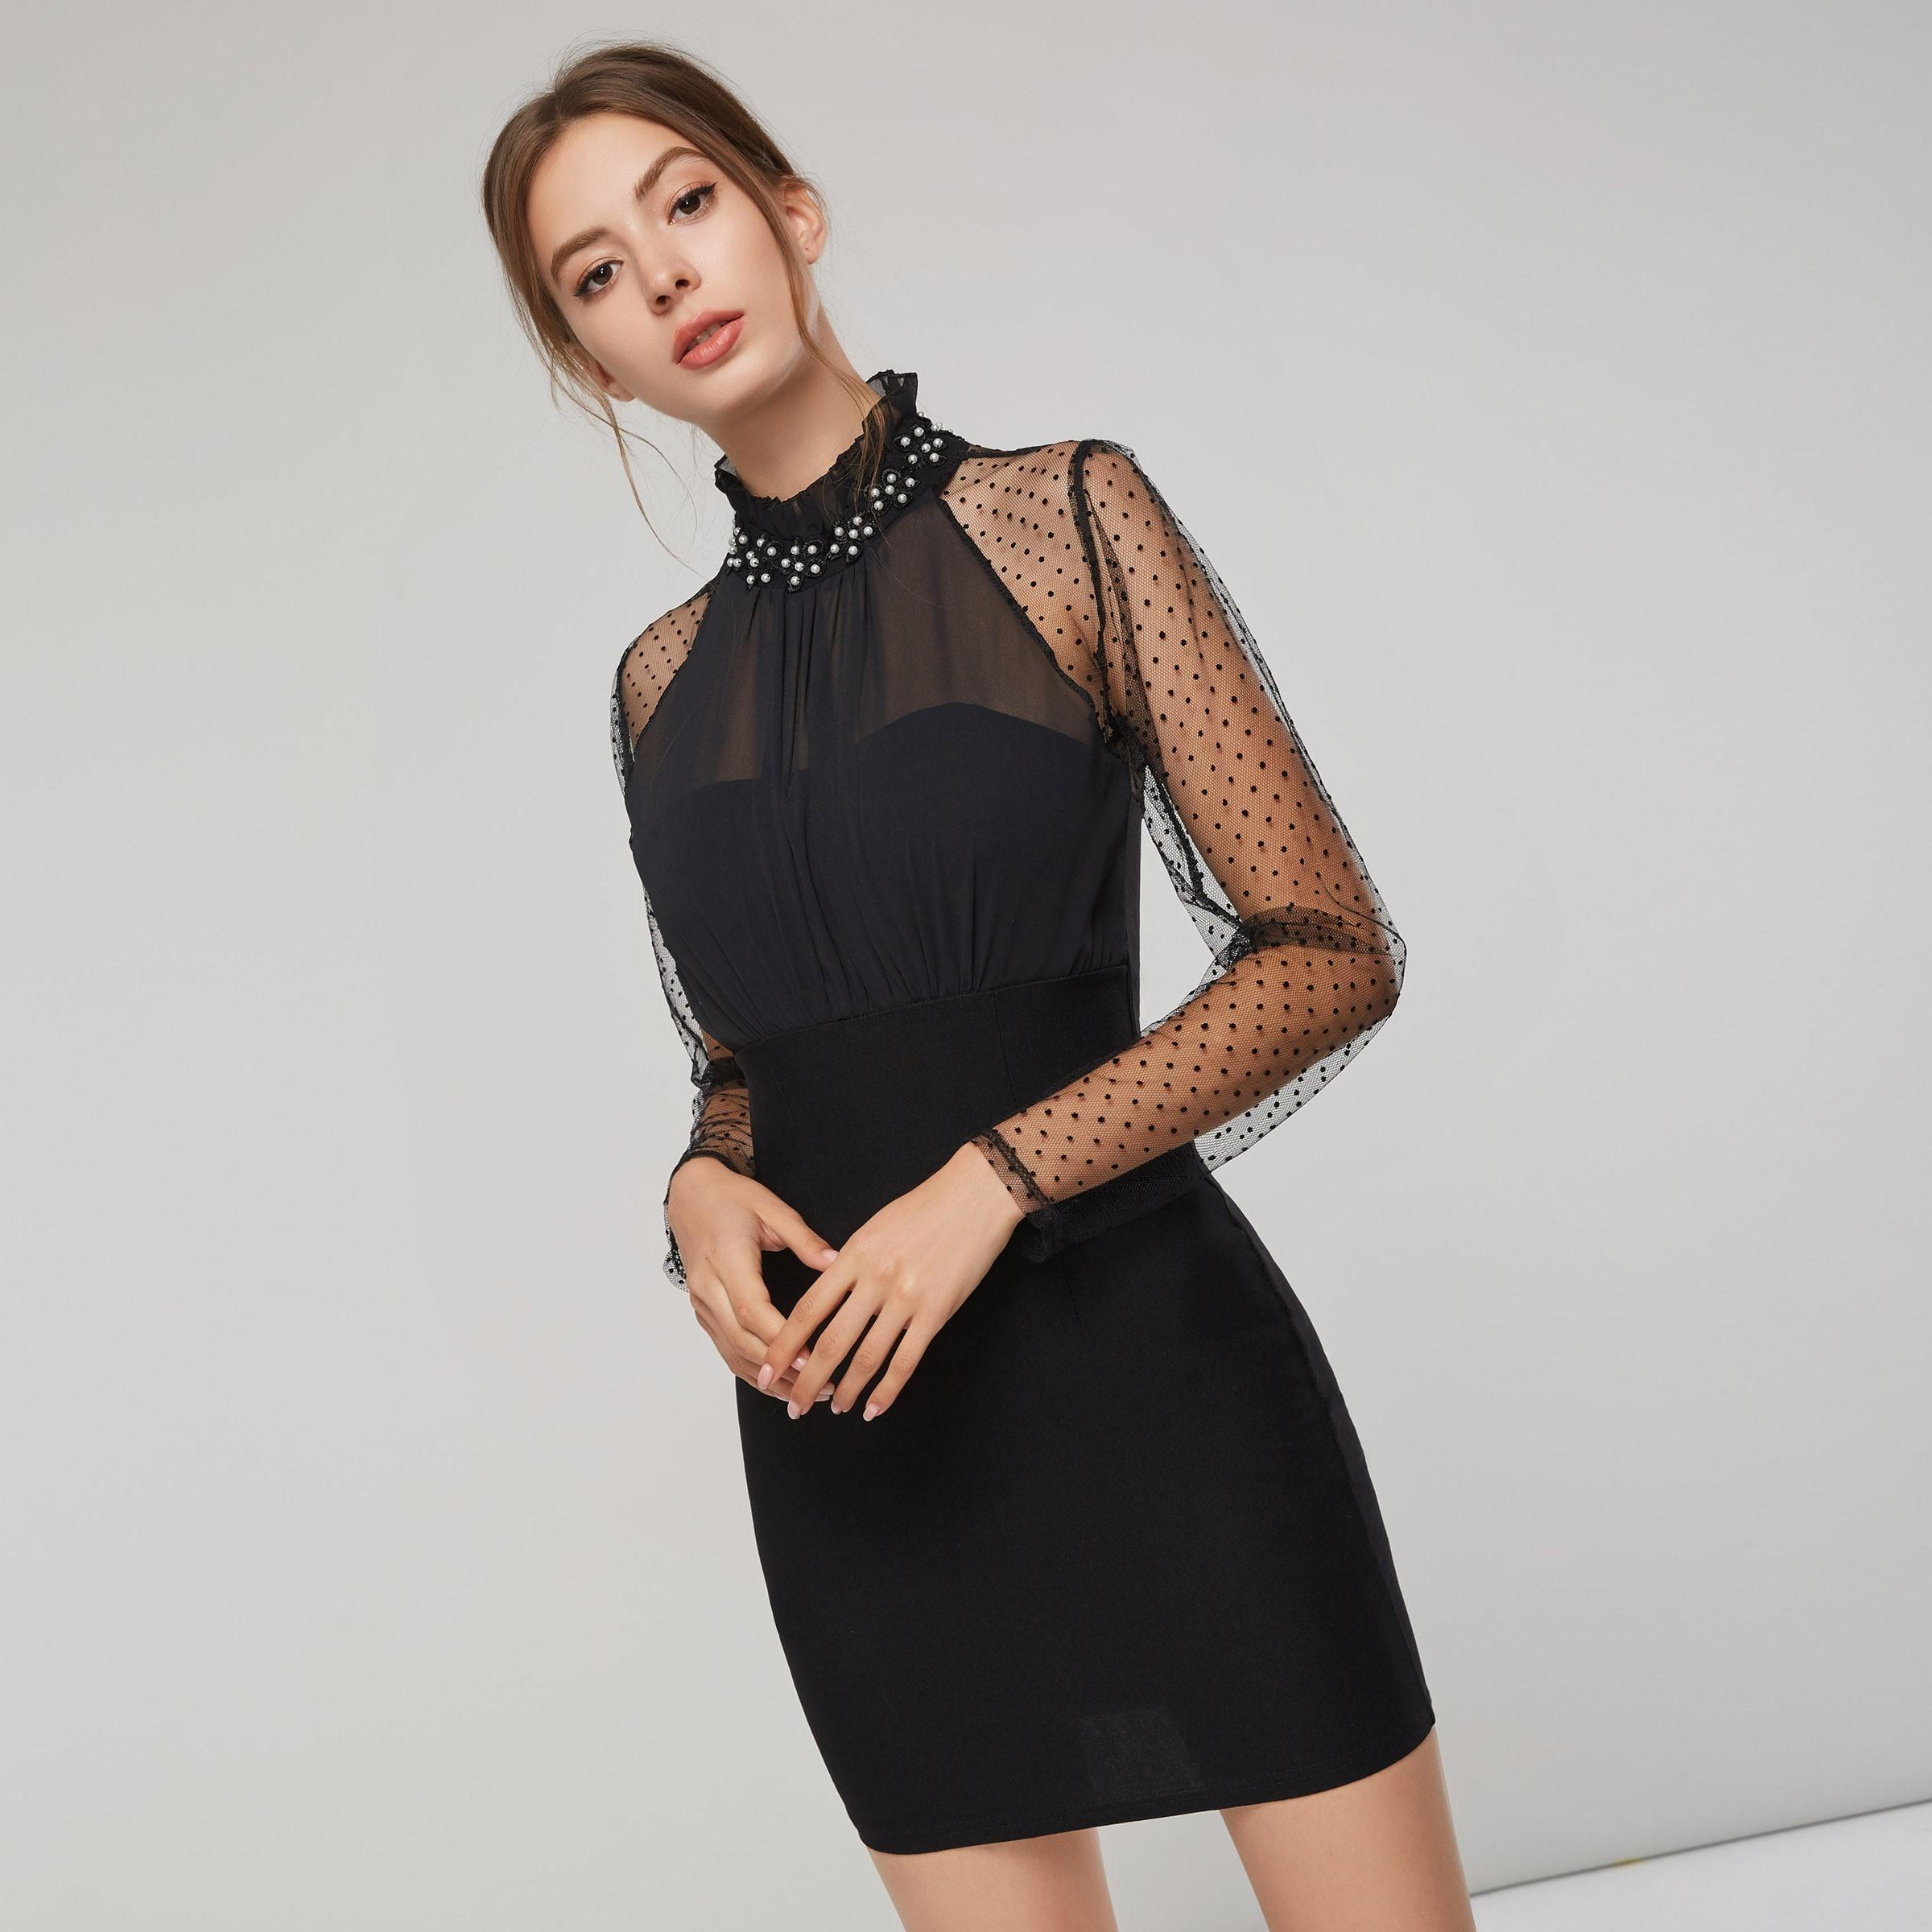 1c94c3f7eac 2019 Evening Party Work Vintage Black See Through Polka Dot Mesh Bodycon  Dress Women Spring Ruffle Faux Pearl Short Dresses C19041501 From Shen8407